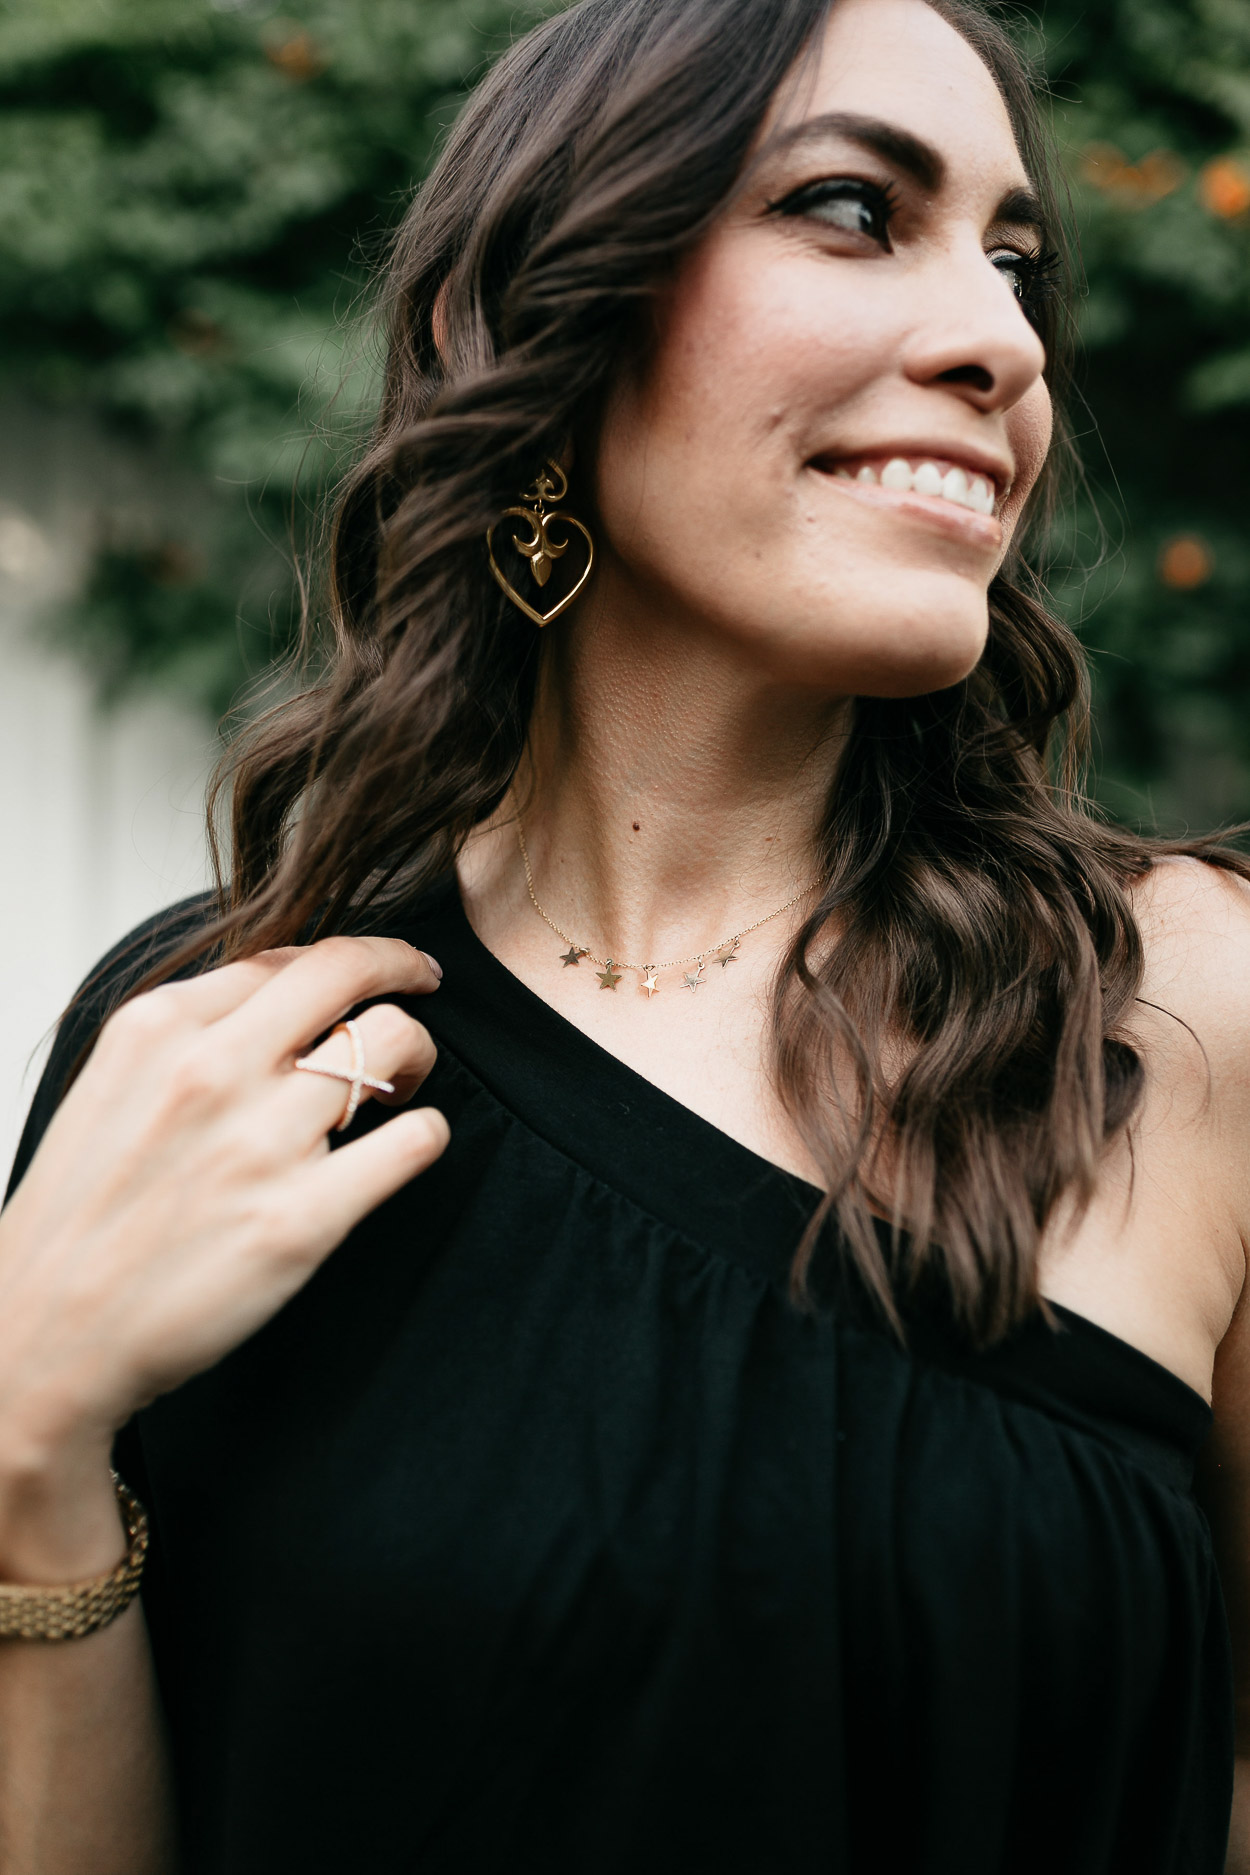 Style your black one shoulder dress with dainty gold jerelry like these Parapala Jewelry necklaces and Julie Vos earrings shown by AGlamLifestyle blogger